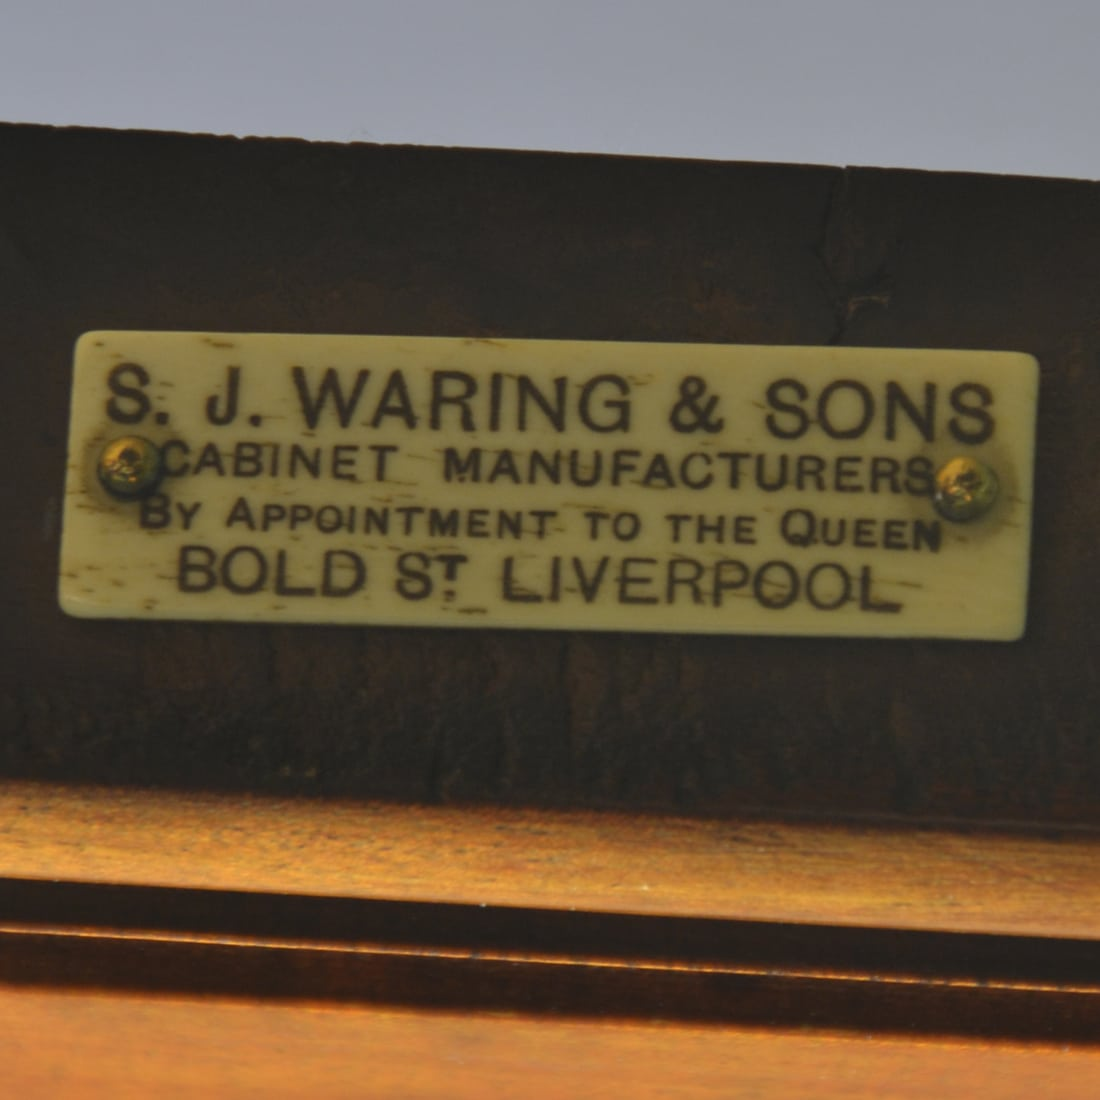 S.J.Waring & Sons